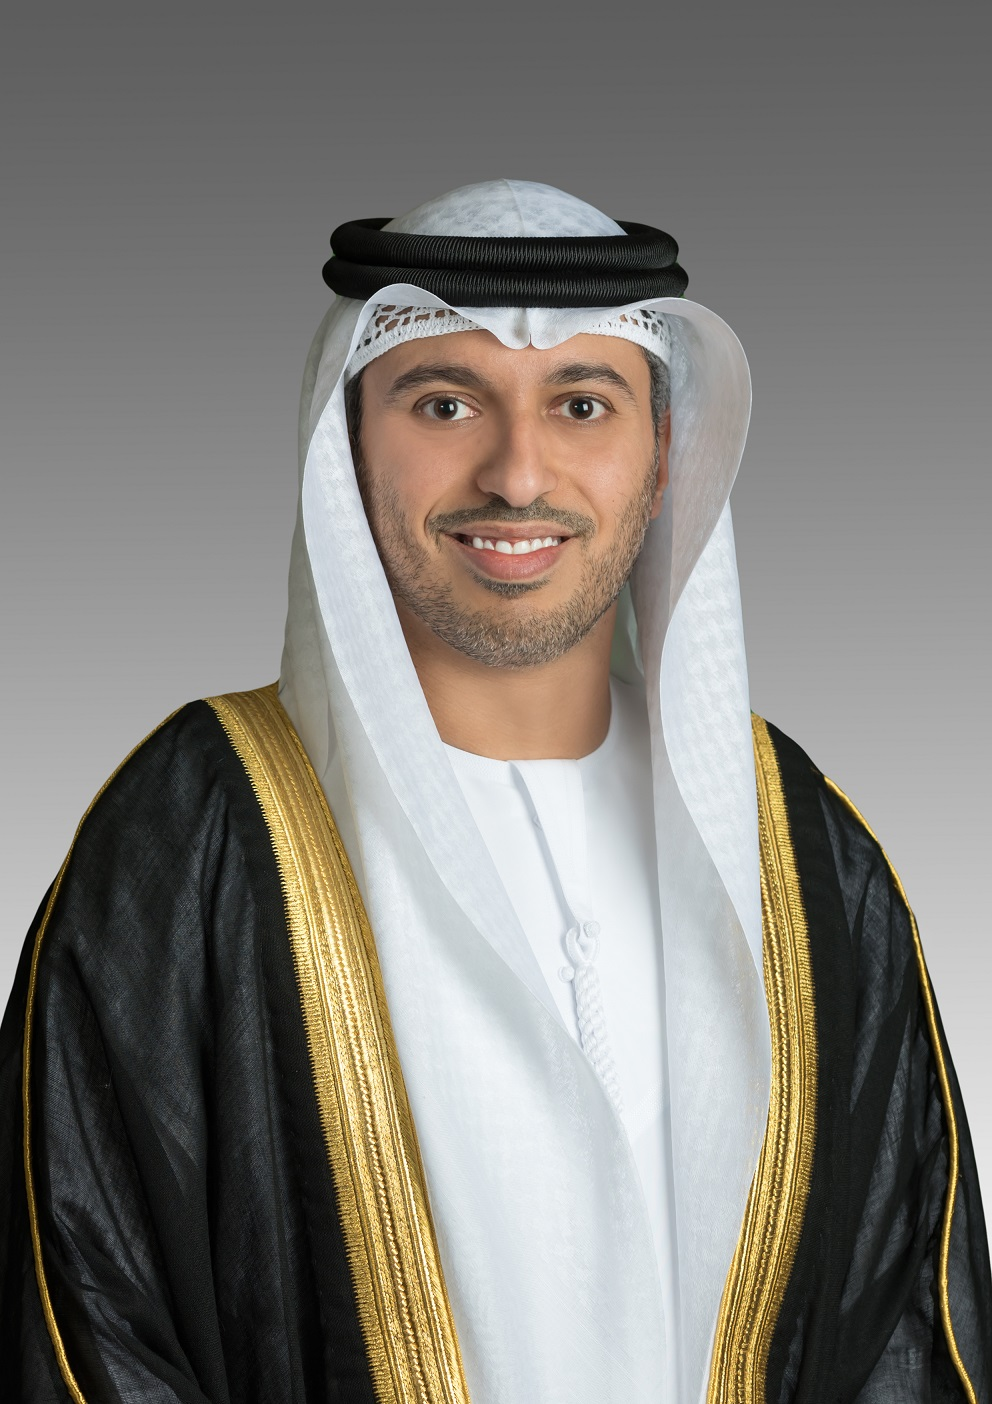 His Excellency Dr. Ahmad Belhoul Al Falasi, UAE Minister of State for Entrepreneurship &SMAll&Medium Enterprises